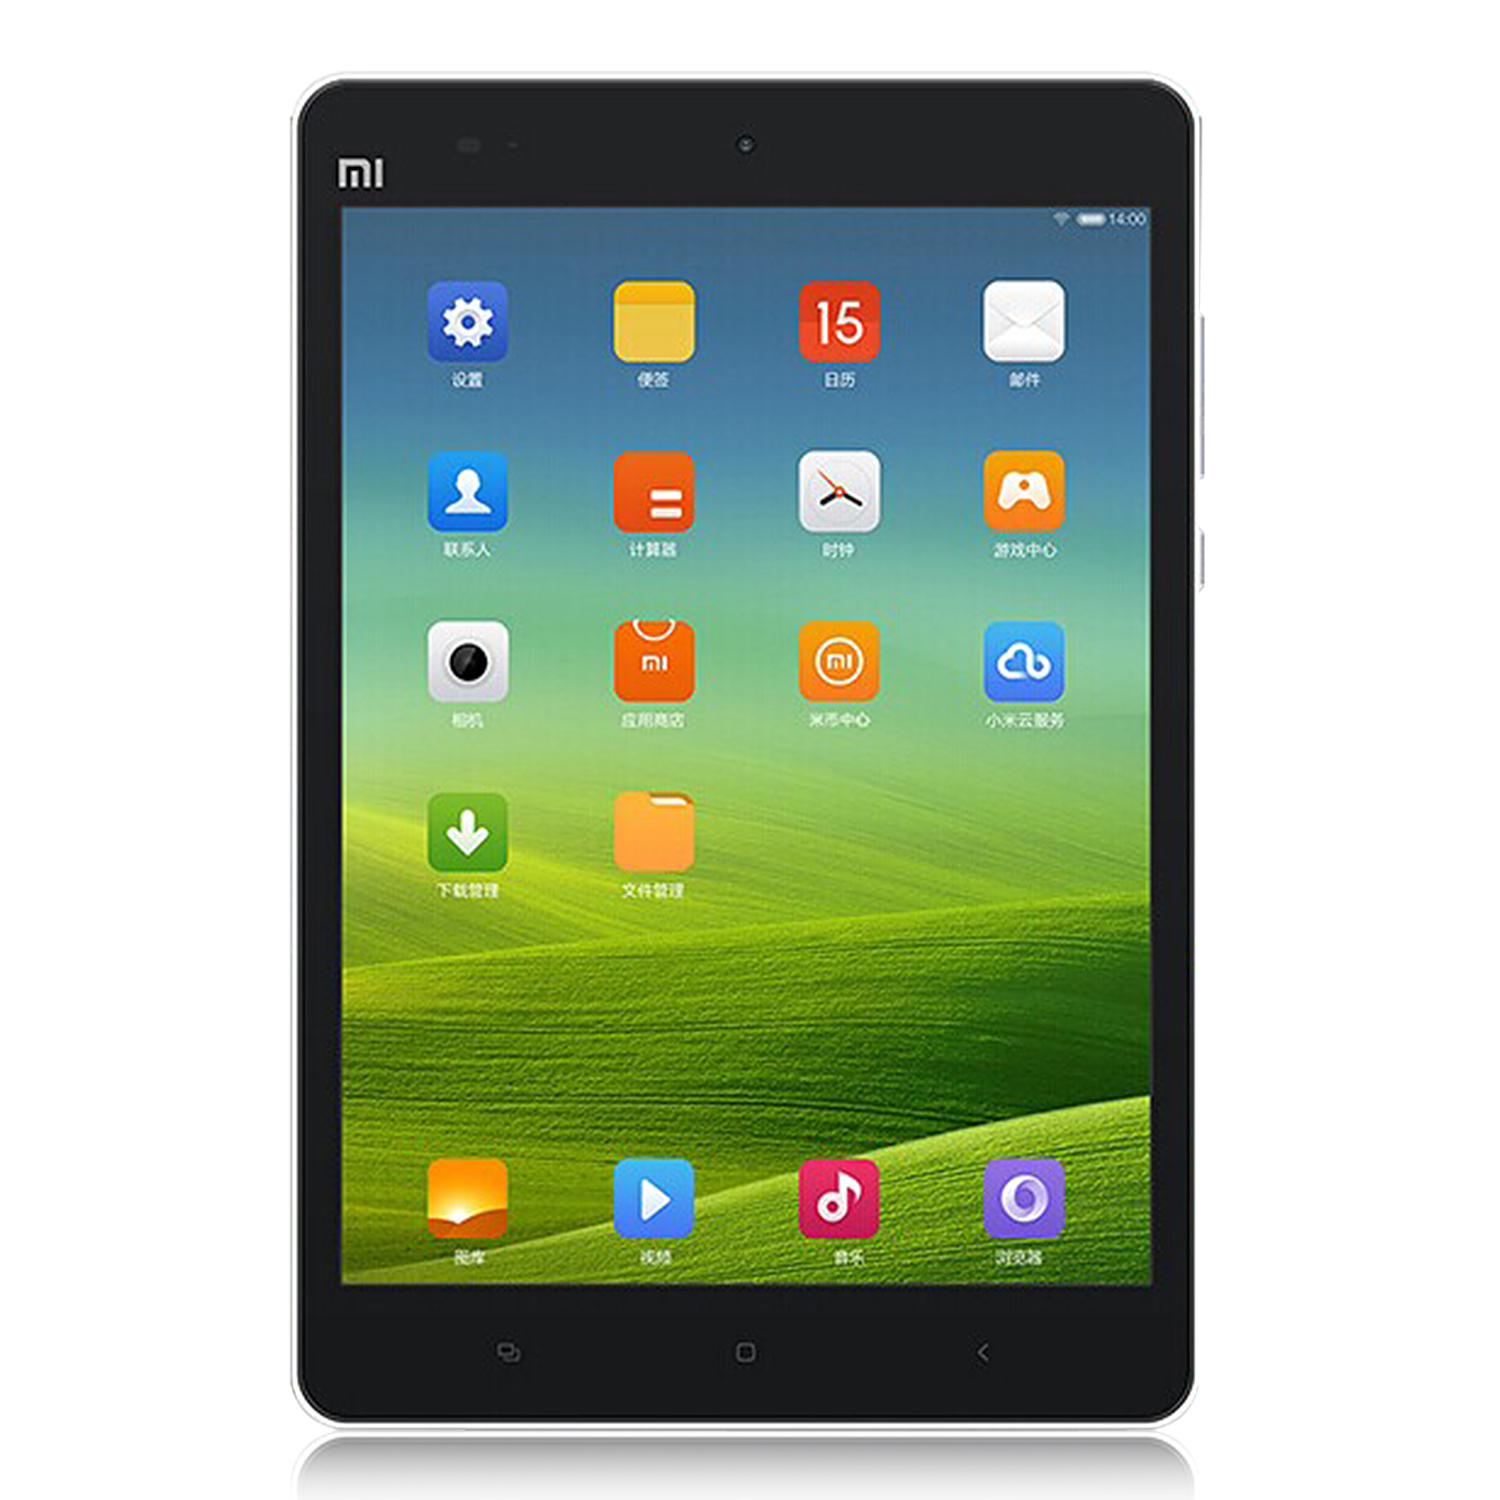 XIAOMI MI PAD Tablet PC Tegra K1 7.9 Inch Android 4.4 Retina IPS Screen 2GB 16GB White